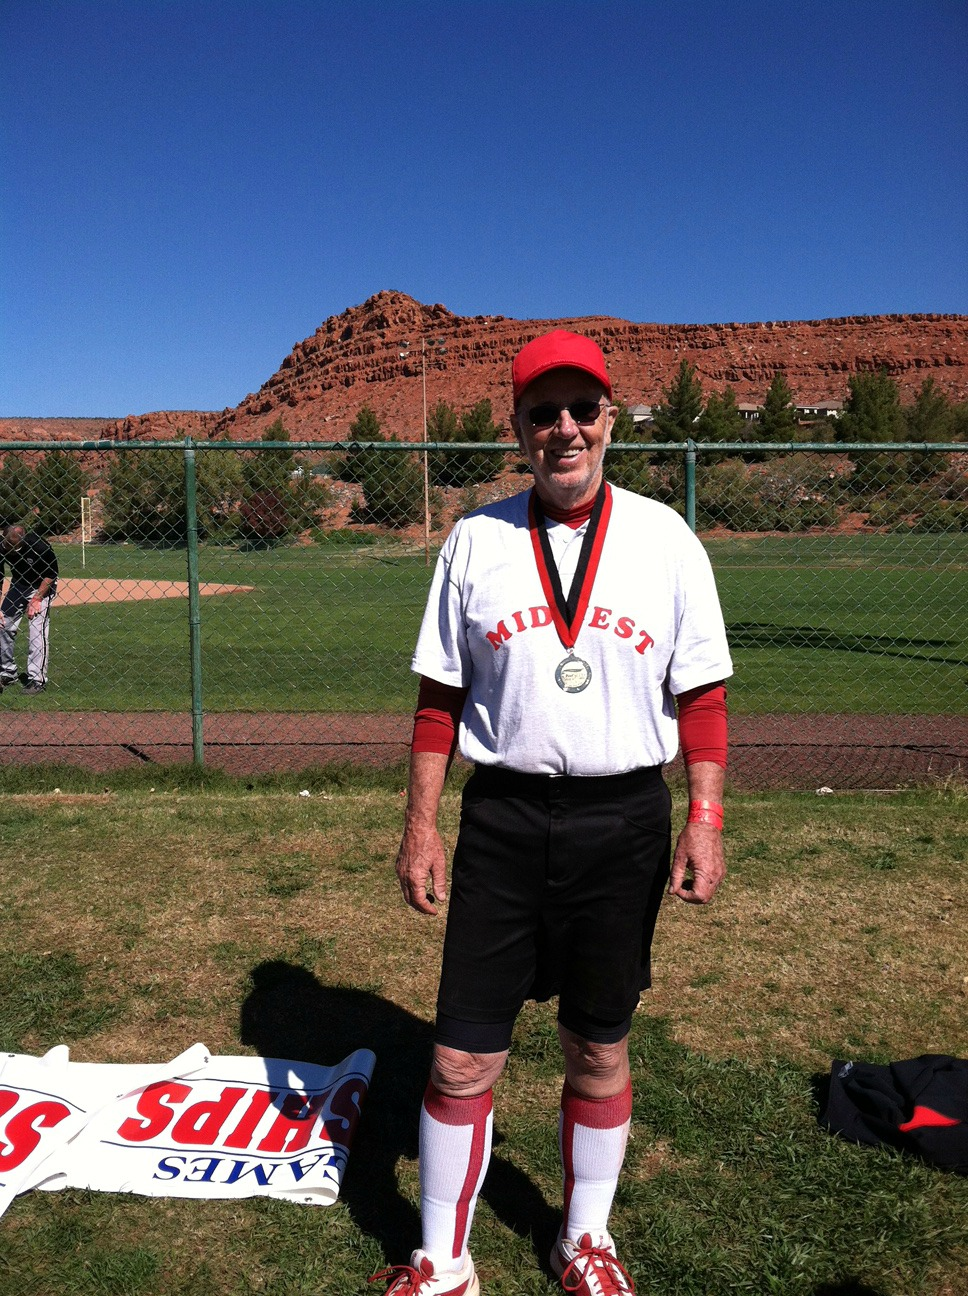 George at the Huntsman World Senior Games in St. George, Utah. His team won gold medal in an age bracket for players in their 80s).